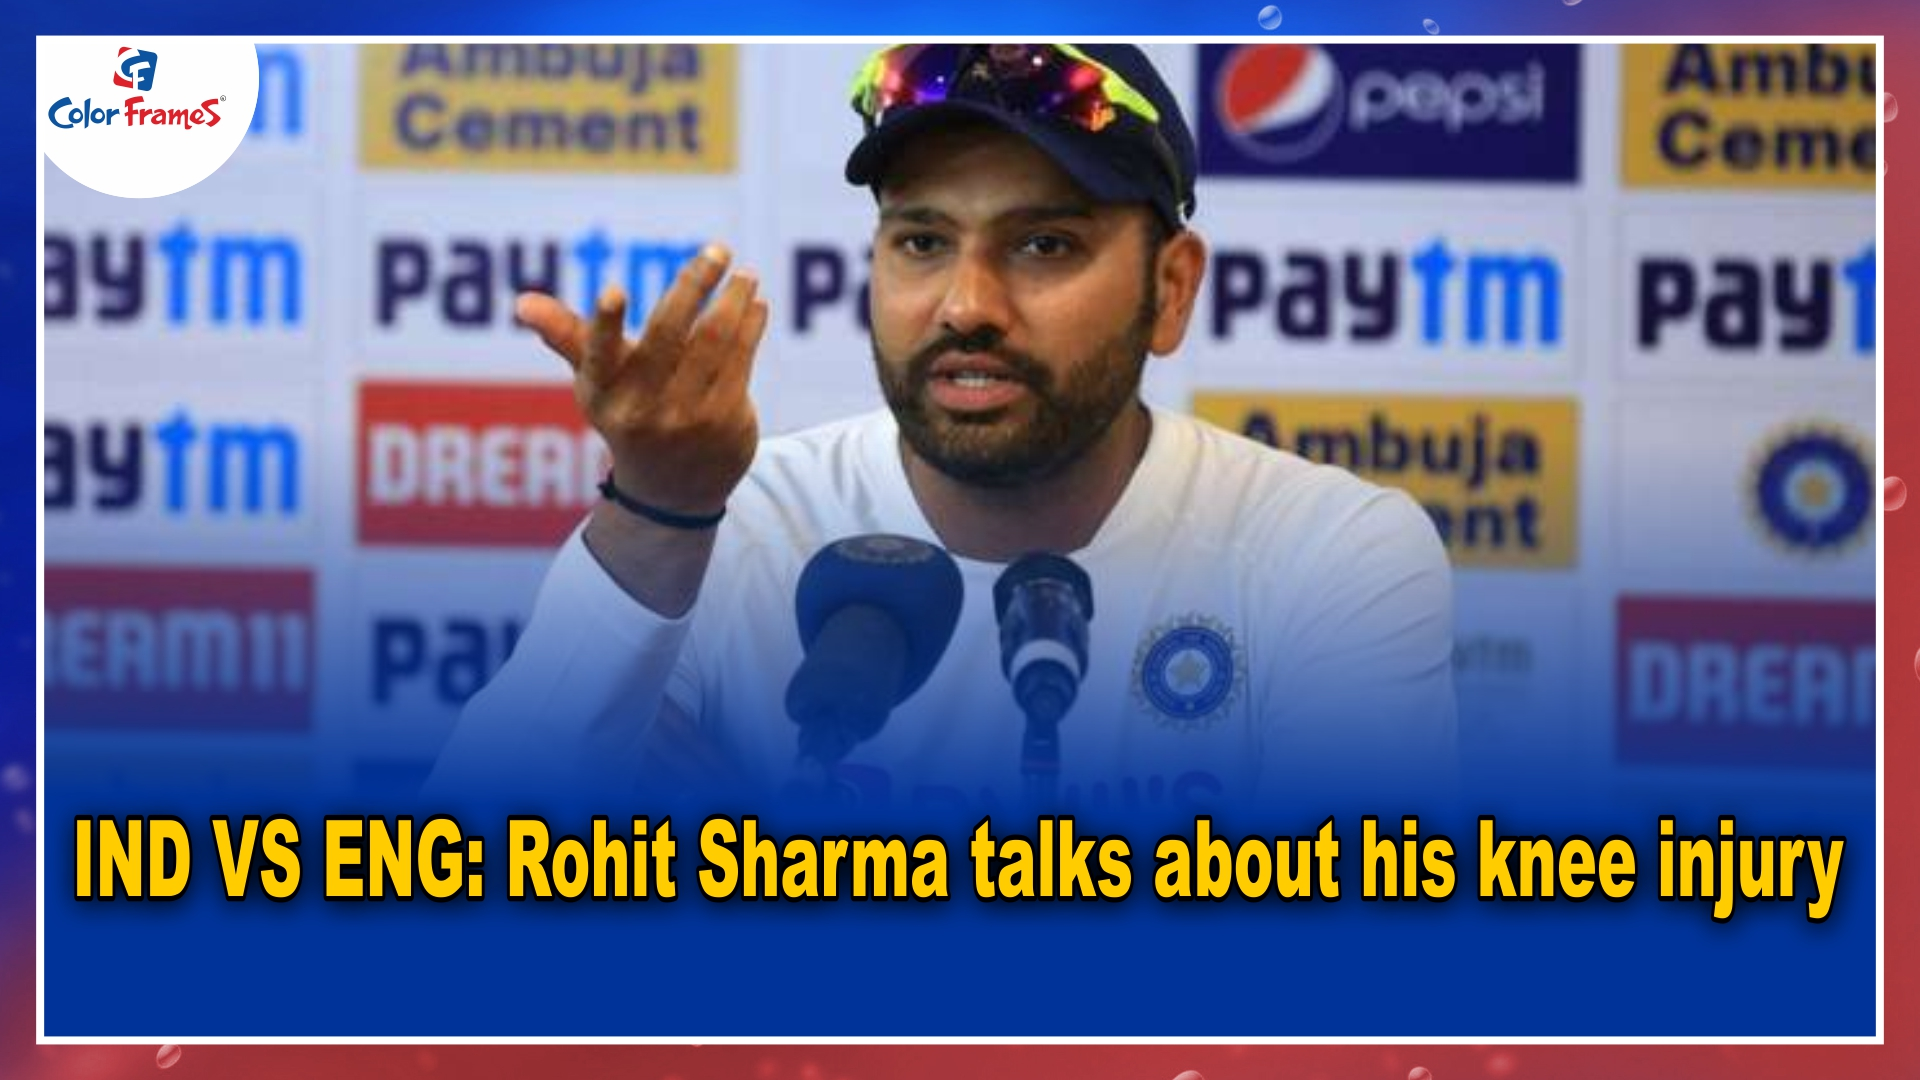 IND VS ENG: Rohit Sharma talks about his knee injury.